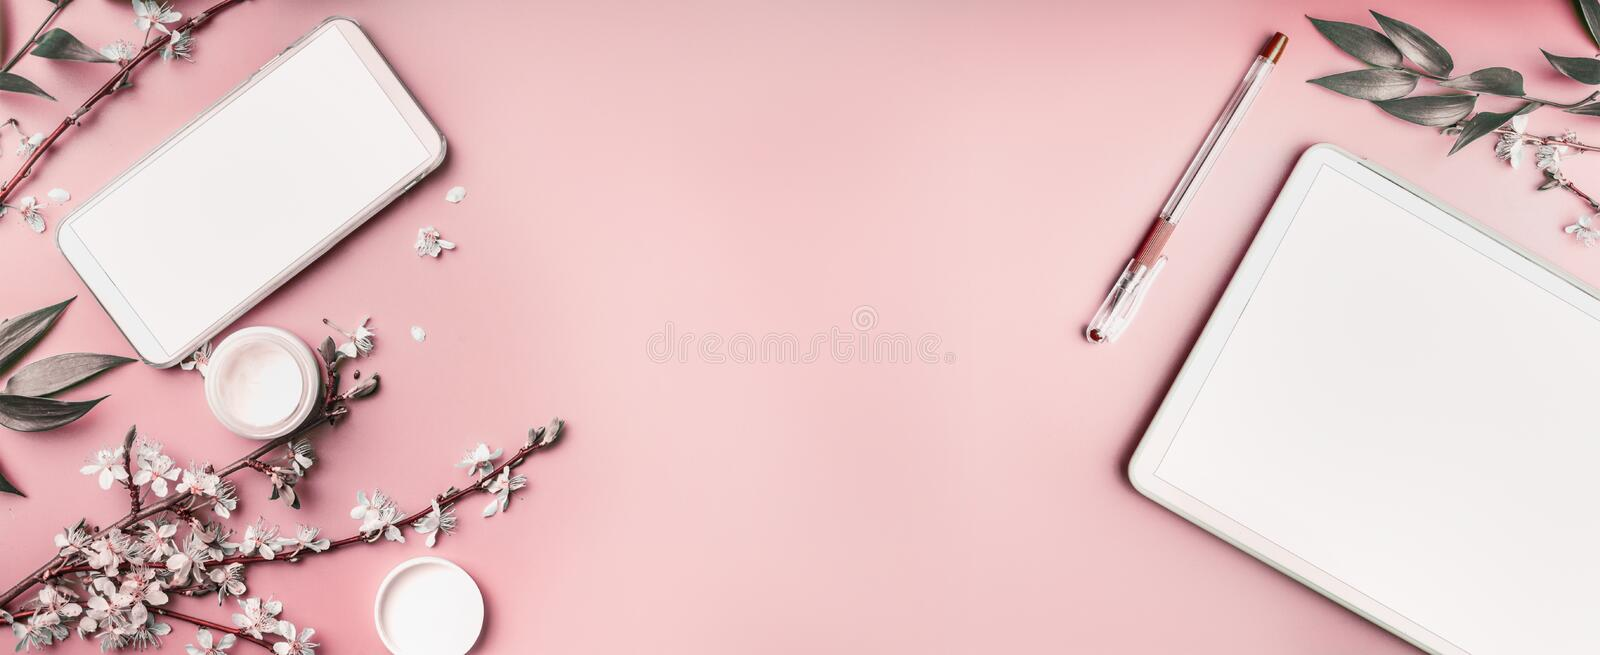 Smartphone and tablet pc mock up on pastel pink desktop background with cosmetic, stationery supples and white blossom branches,. Top view. Beaut blog and stock image